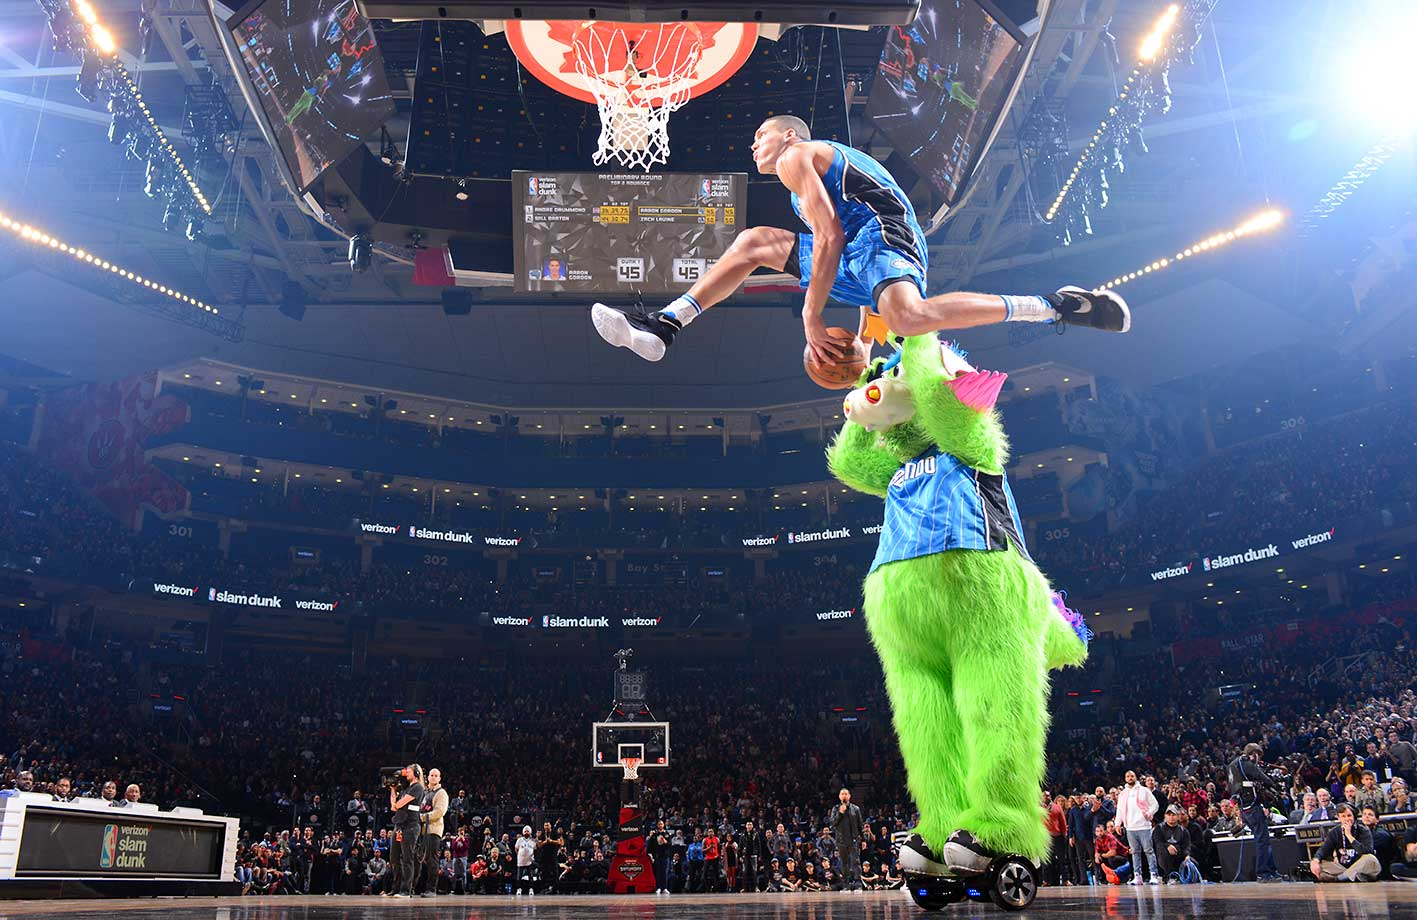 Here are some of the images that caught our eye on the sports night of Feb. 13, starting with Aaron Gordon during the Verizon Slam Dunk Contest.